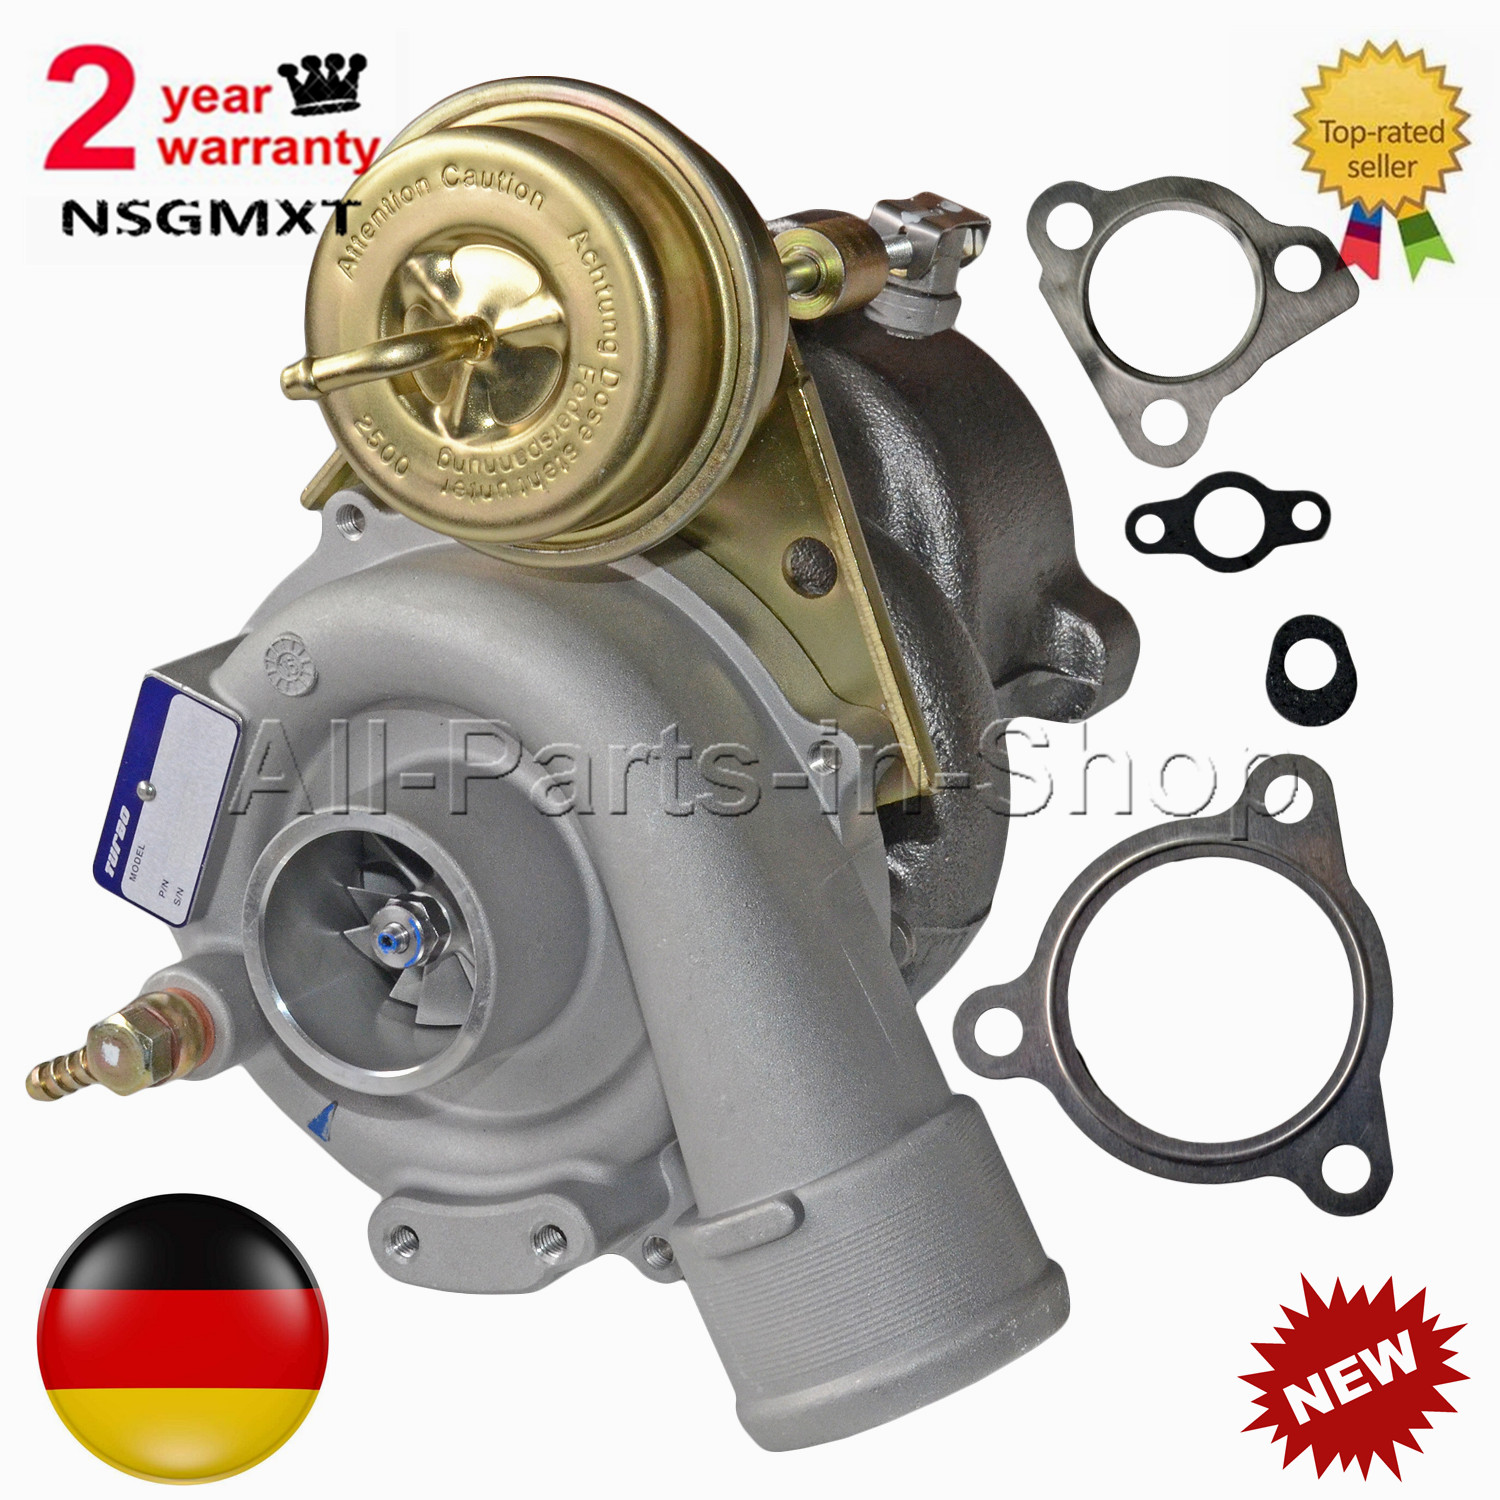 AP01 New Turbo Charger For Audi A4 A6 1.8T VW Passat Gti k03 ANB APU 058145703J 058145703JV 058145703JX 058145703C 058145703E image